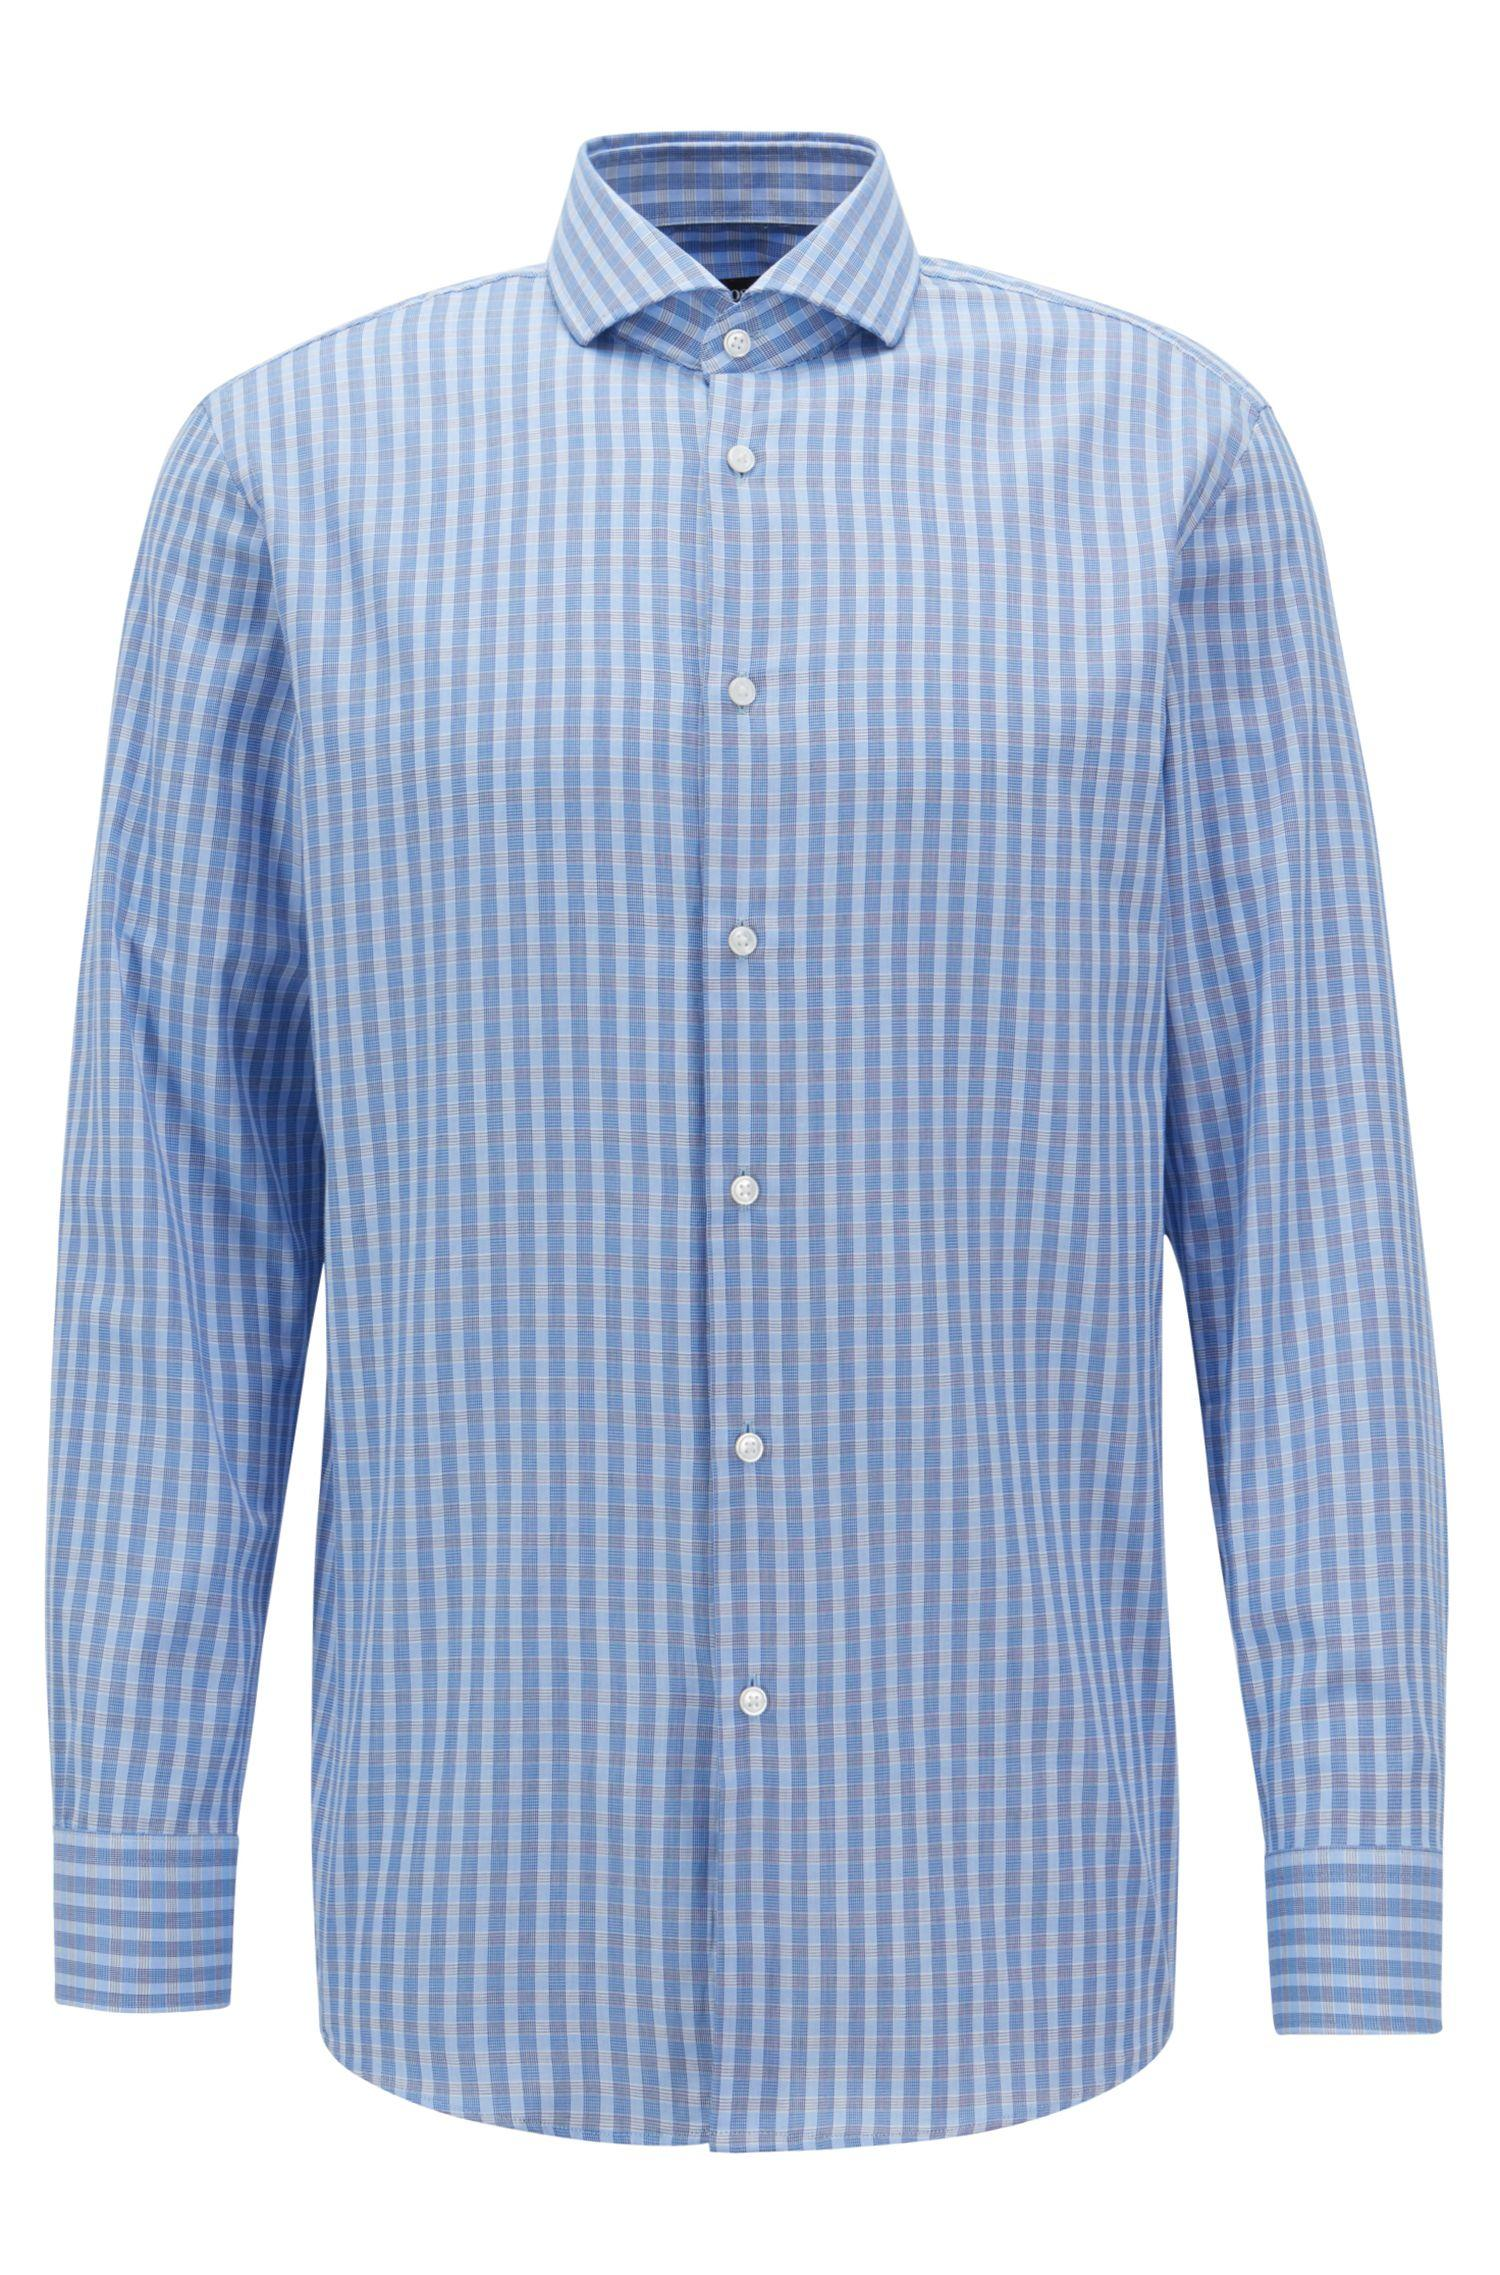 c8ed446b Lyst - BOSS Sharp-fit Shirt In Cotton Twill With Vichy Check Pattern ...